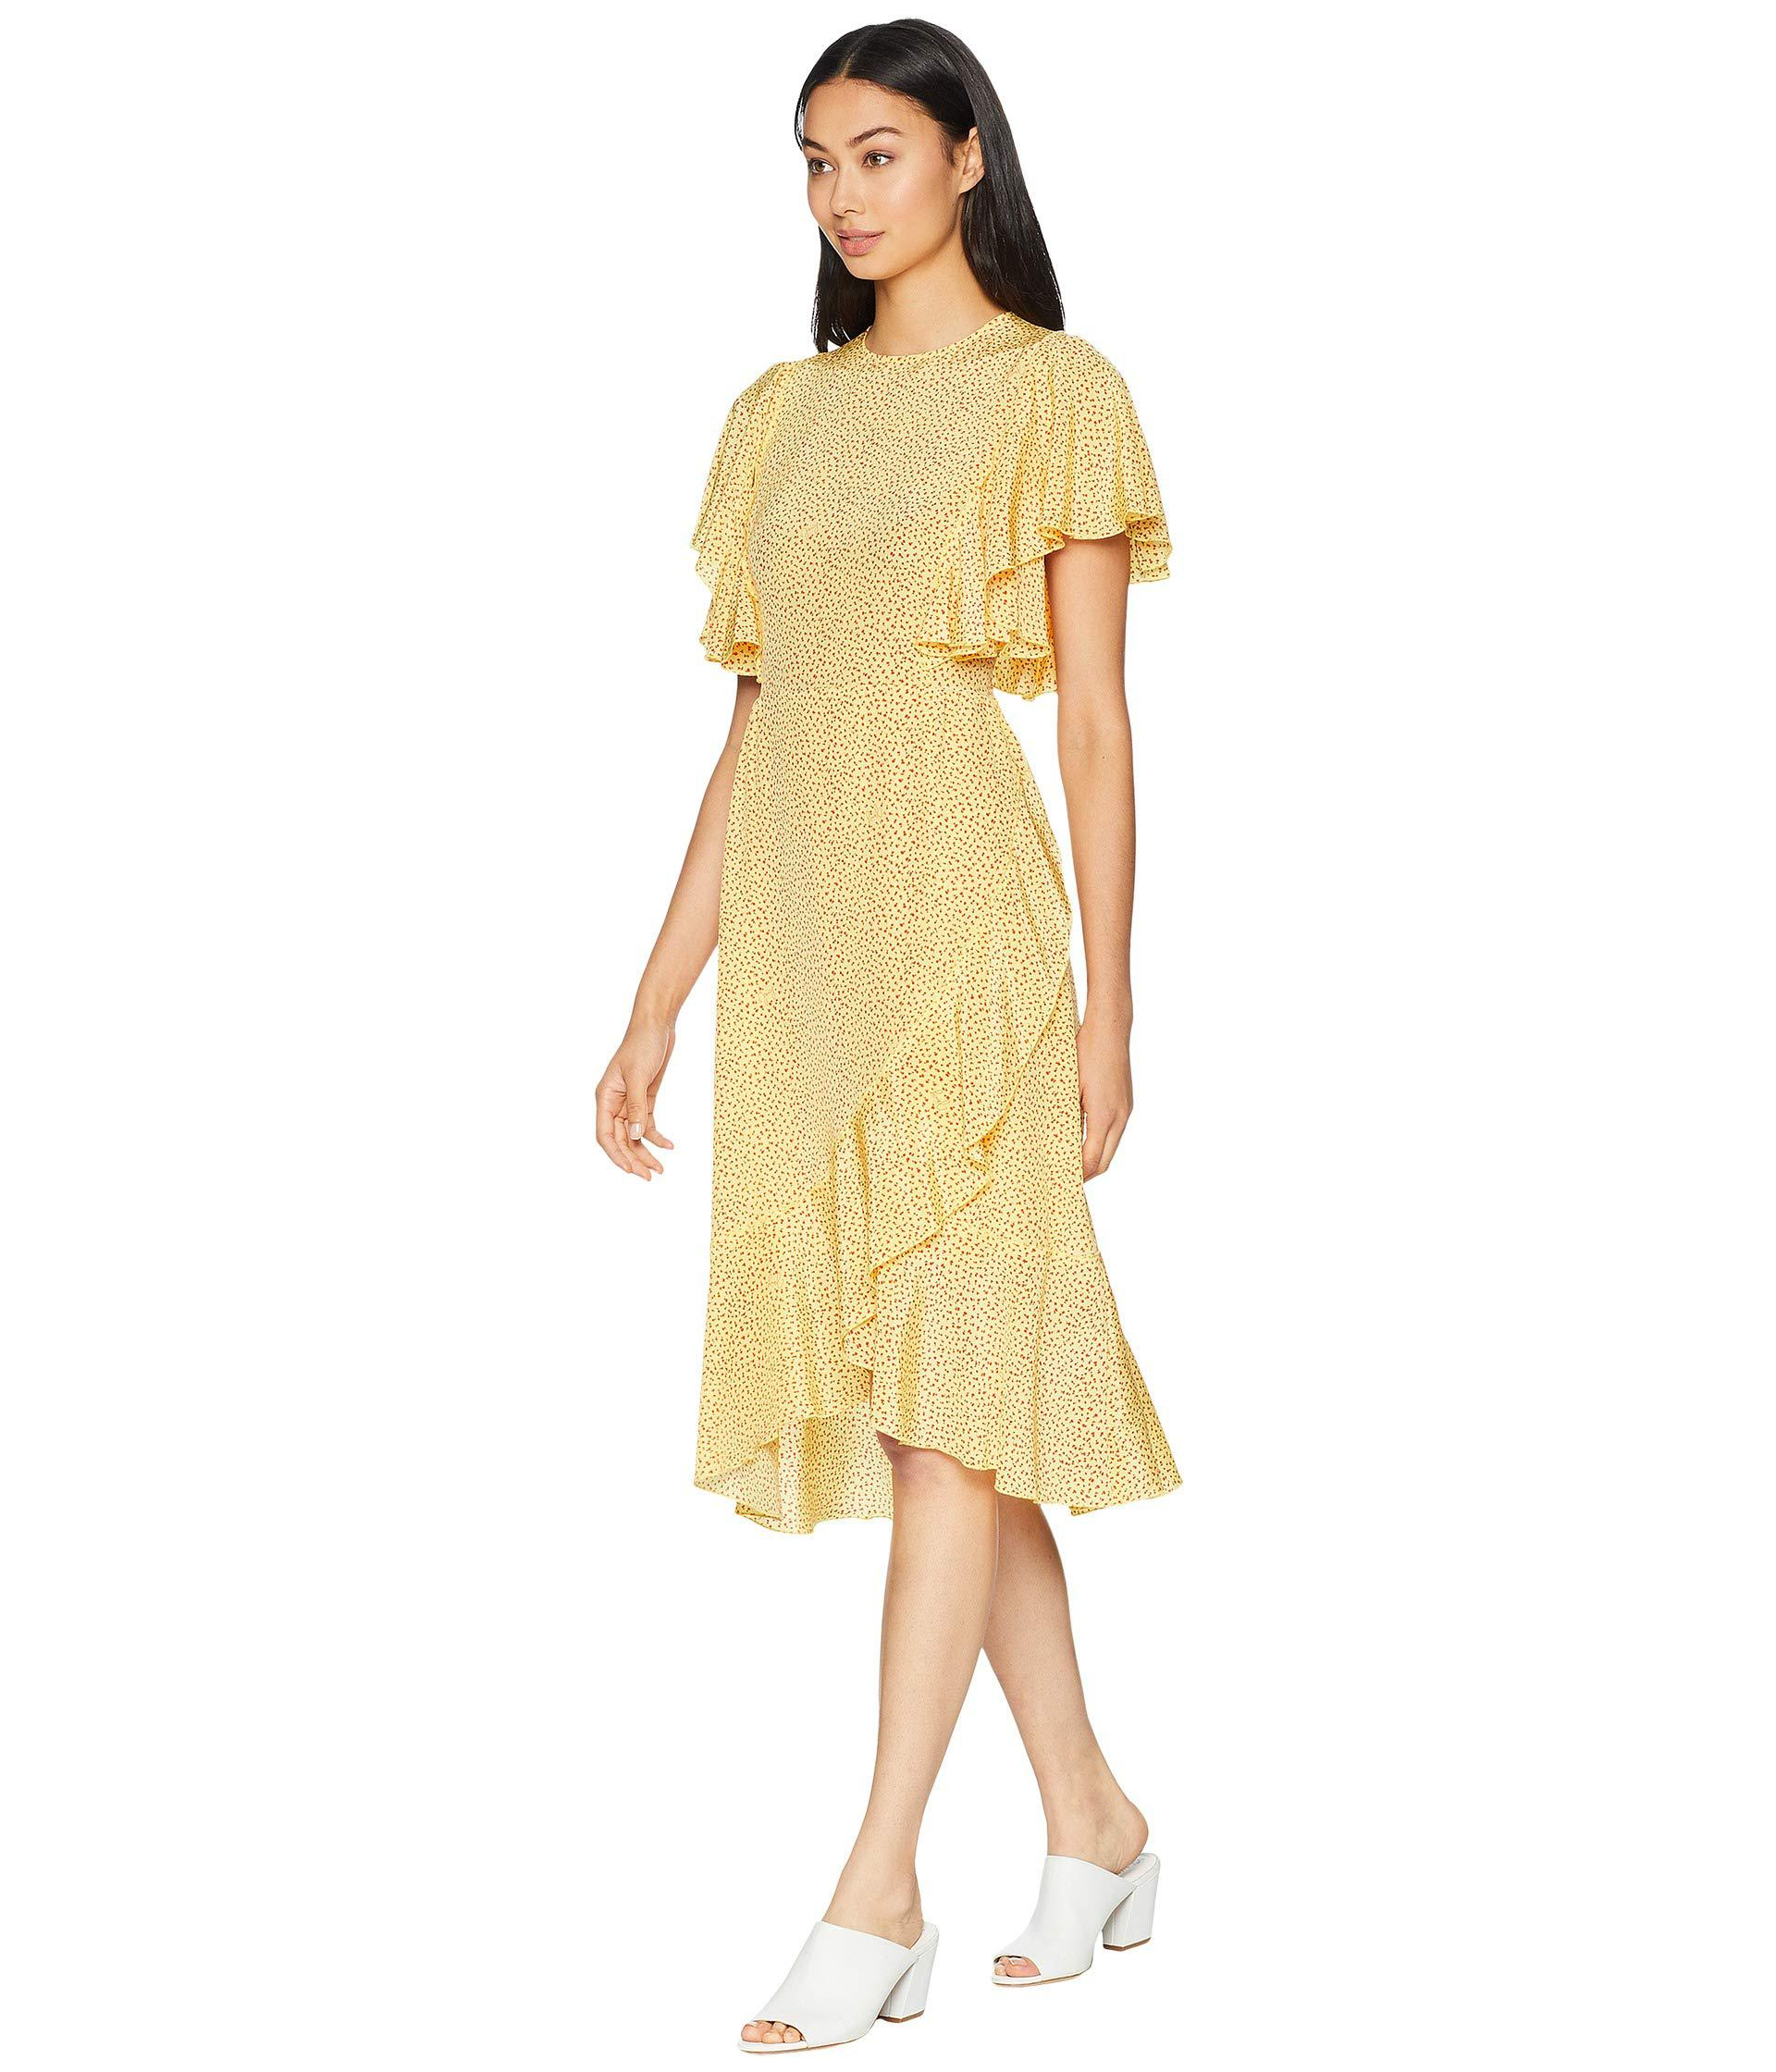 b326689657c95 Lyst - Juicy Couture Laurel Ditsy Ruffle Silk Dress in Yellow